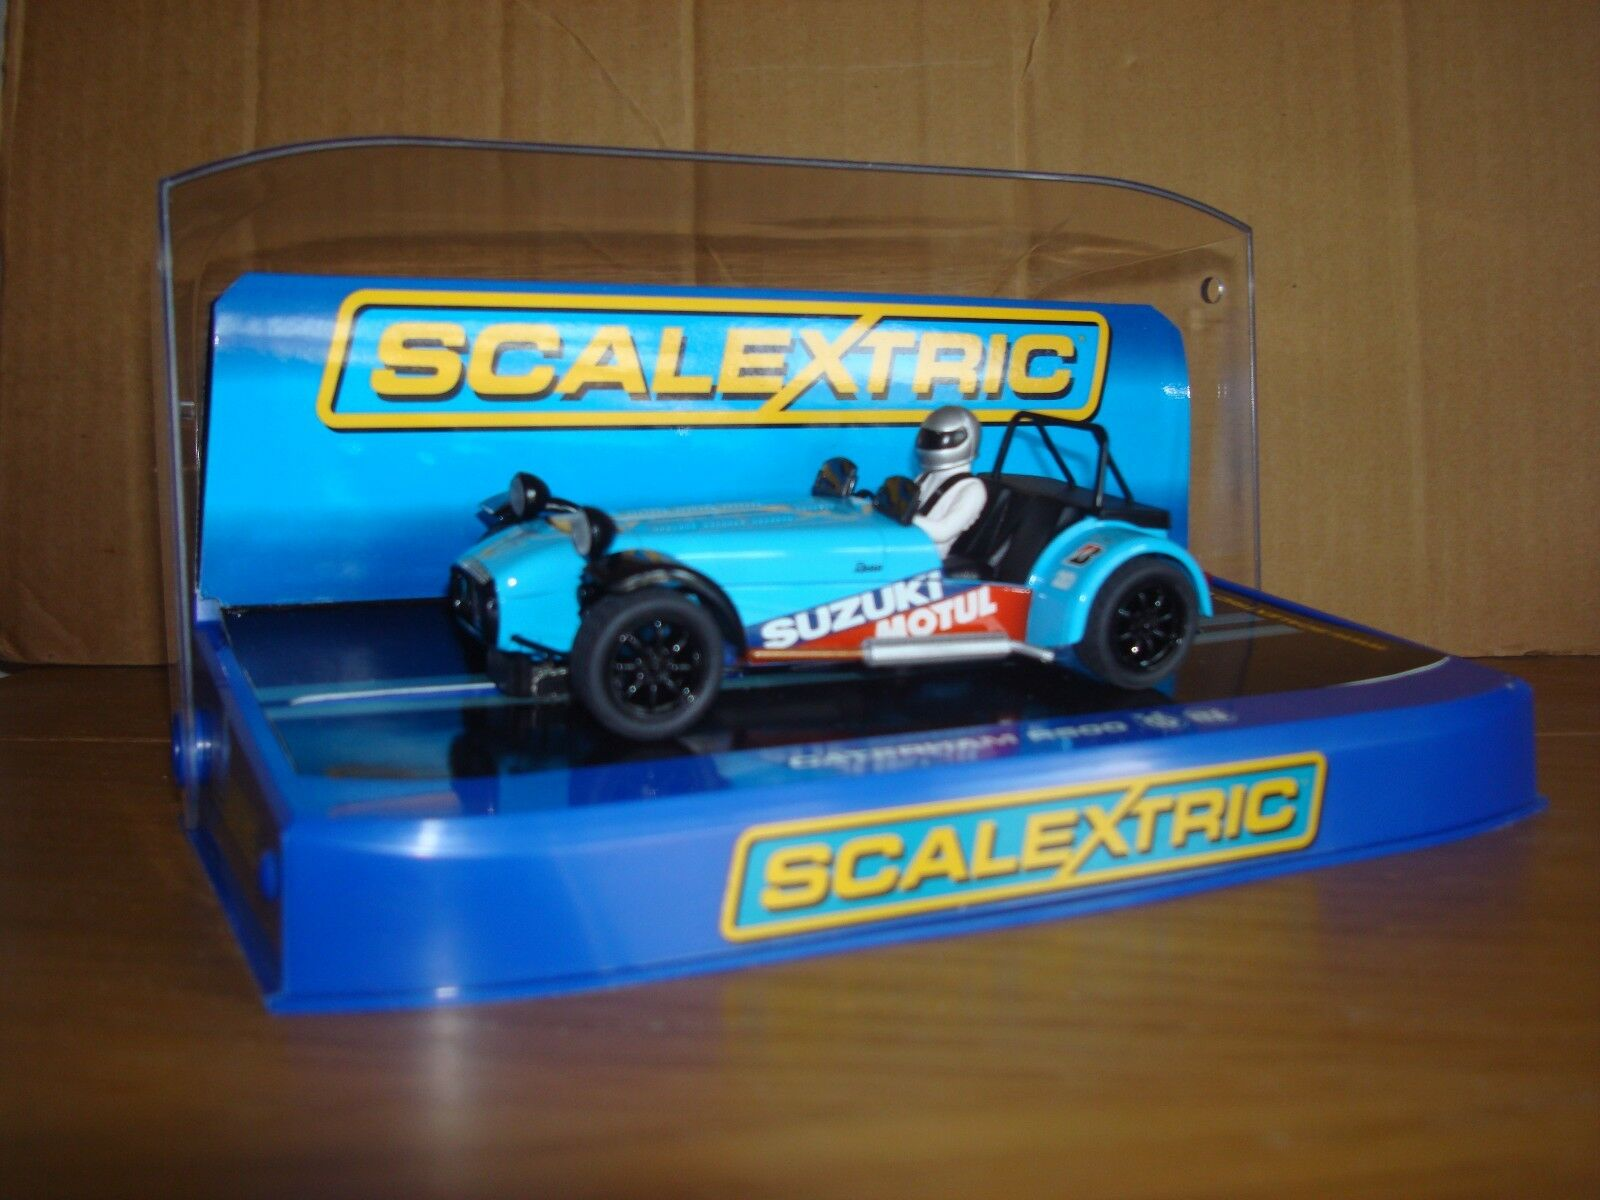 SCALEXTRIC C3133 CATERHAM R500 blueE CAR - MINT, BOXED CONDITION